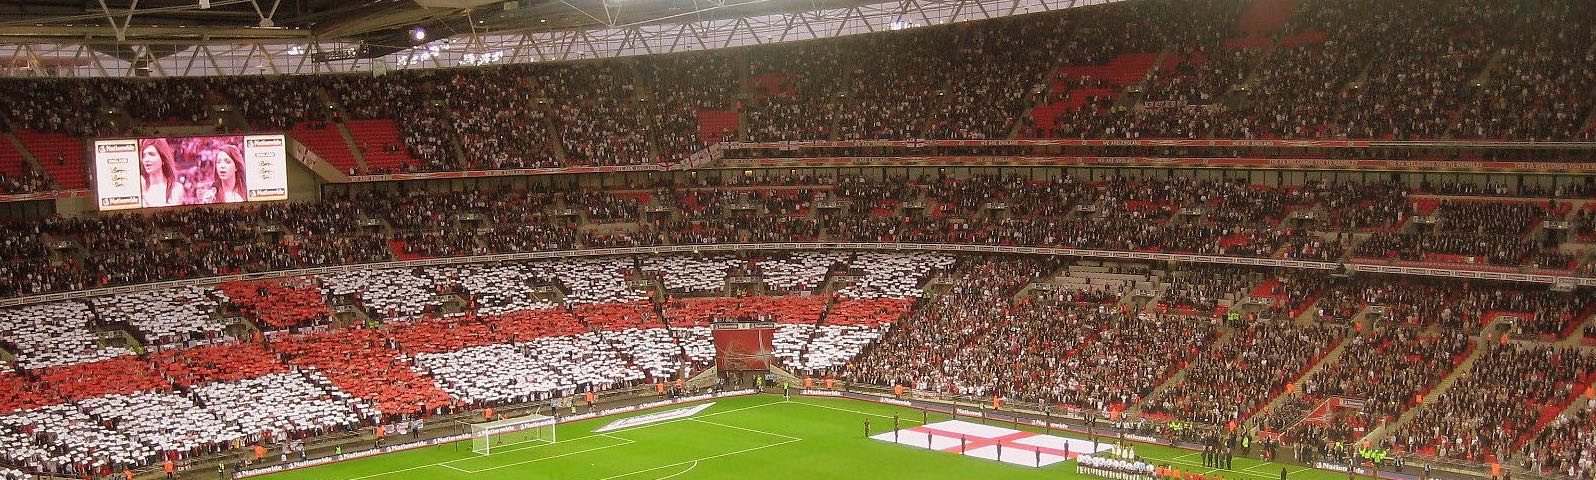 Wembley_Stadium_-England